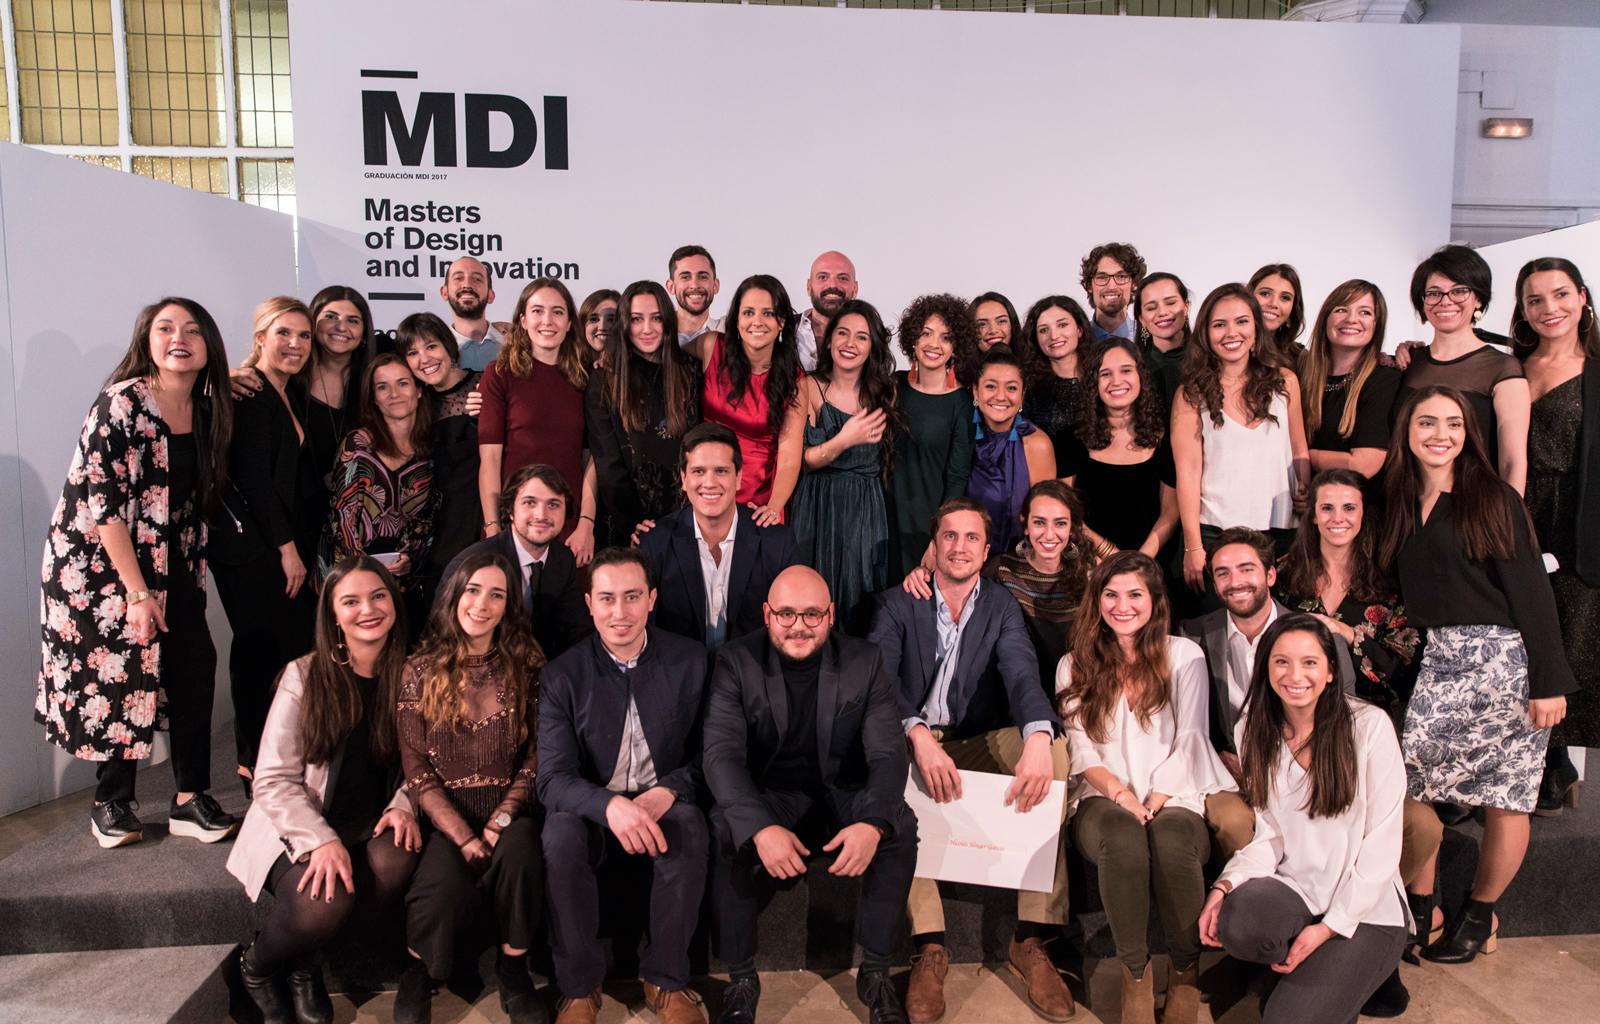 Daily Life MDI 2017 - IED Madrid